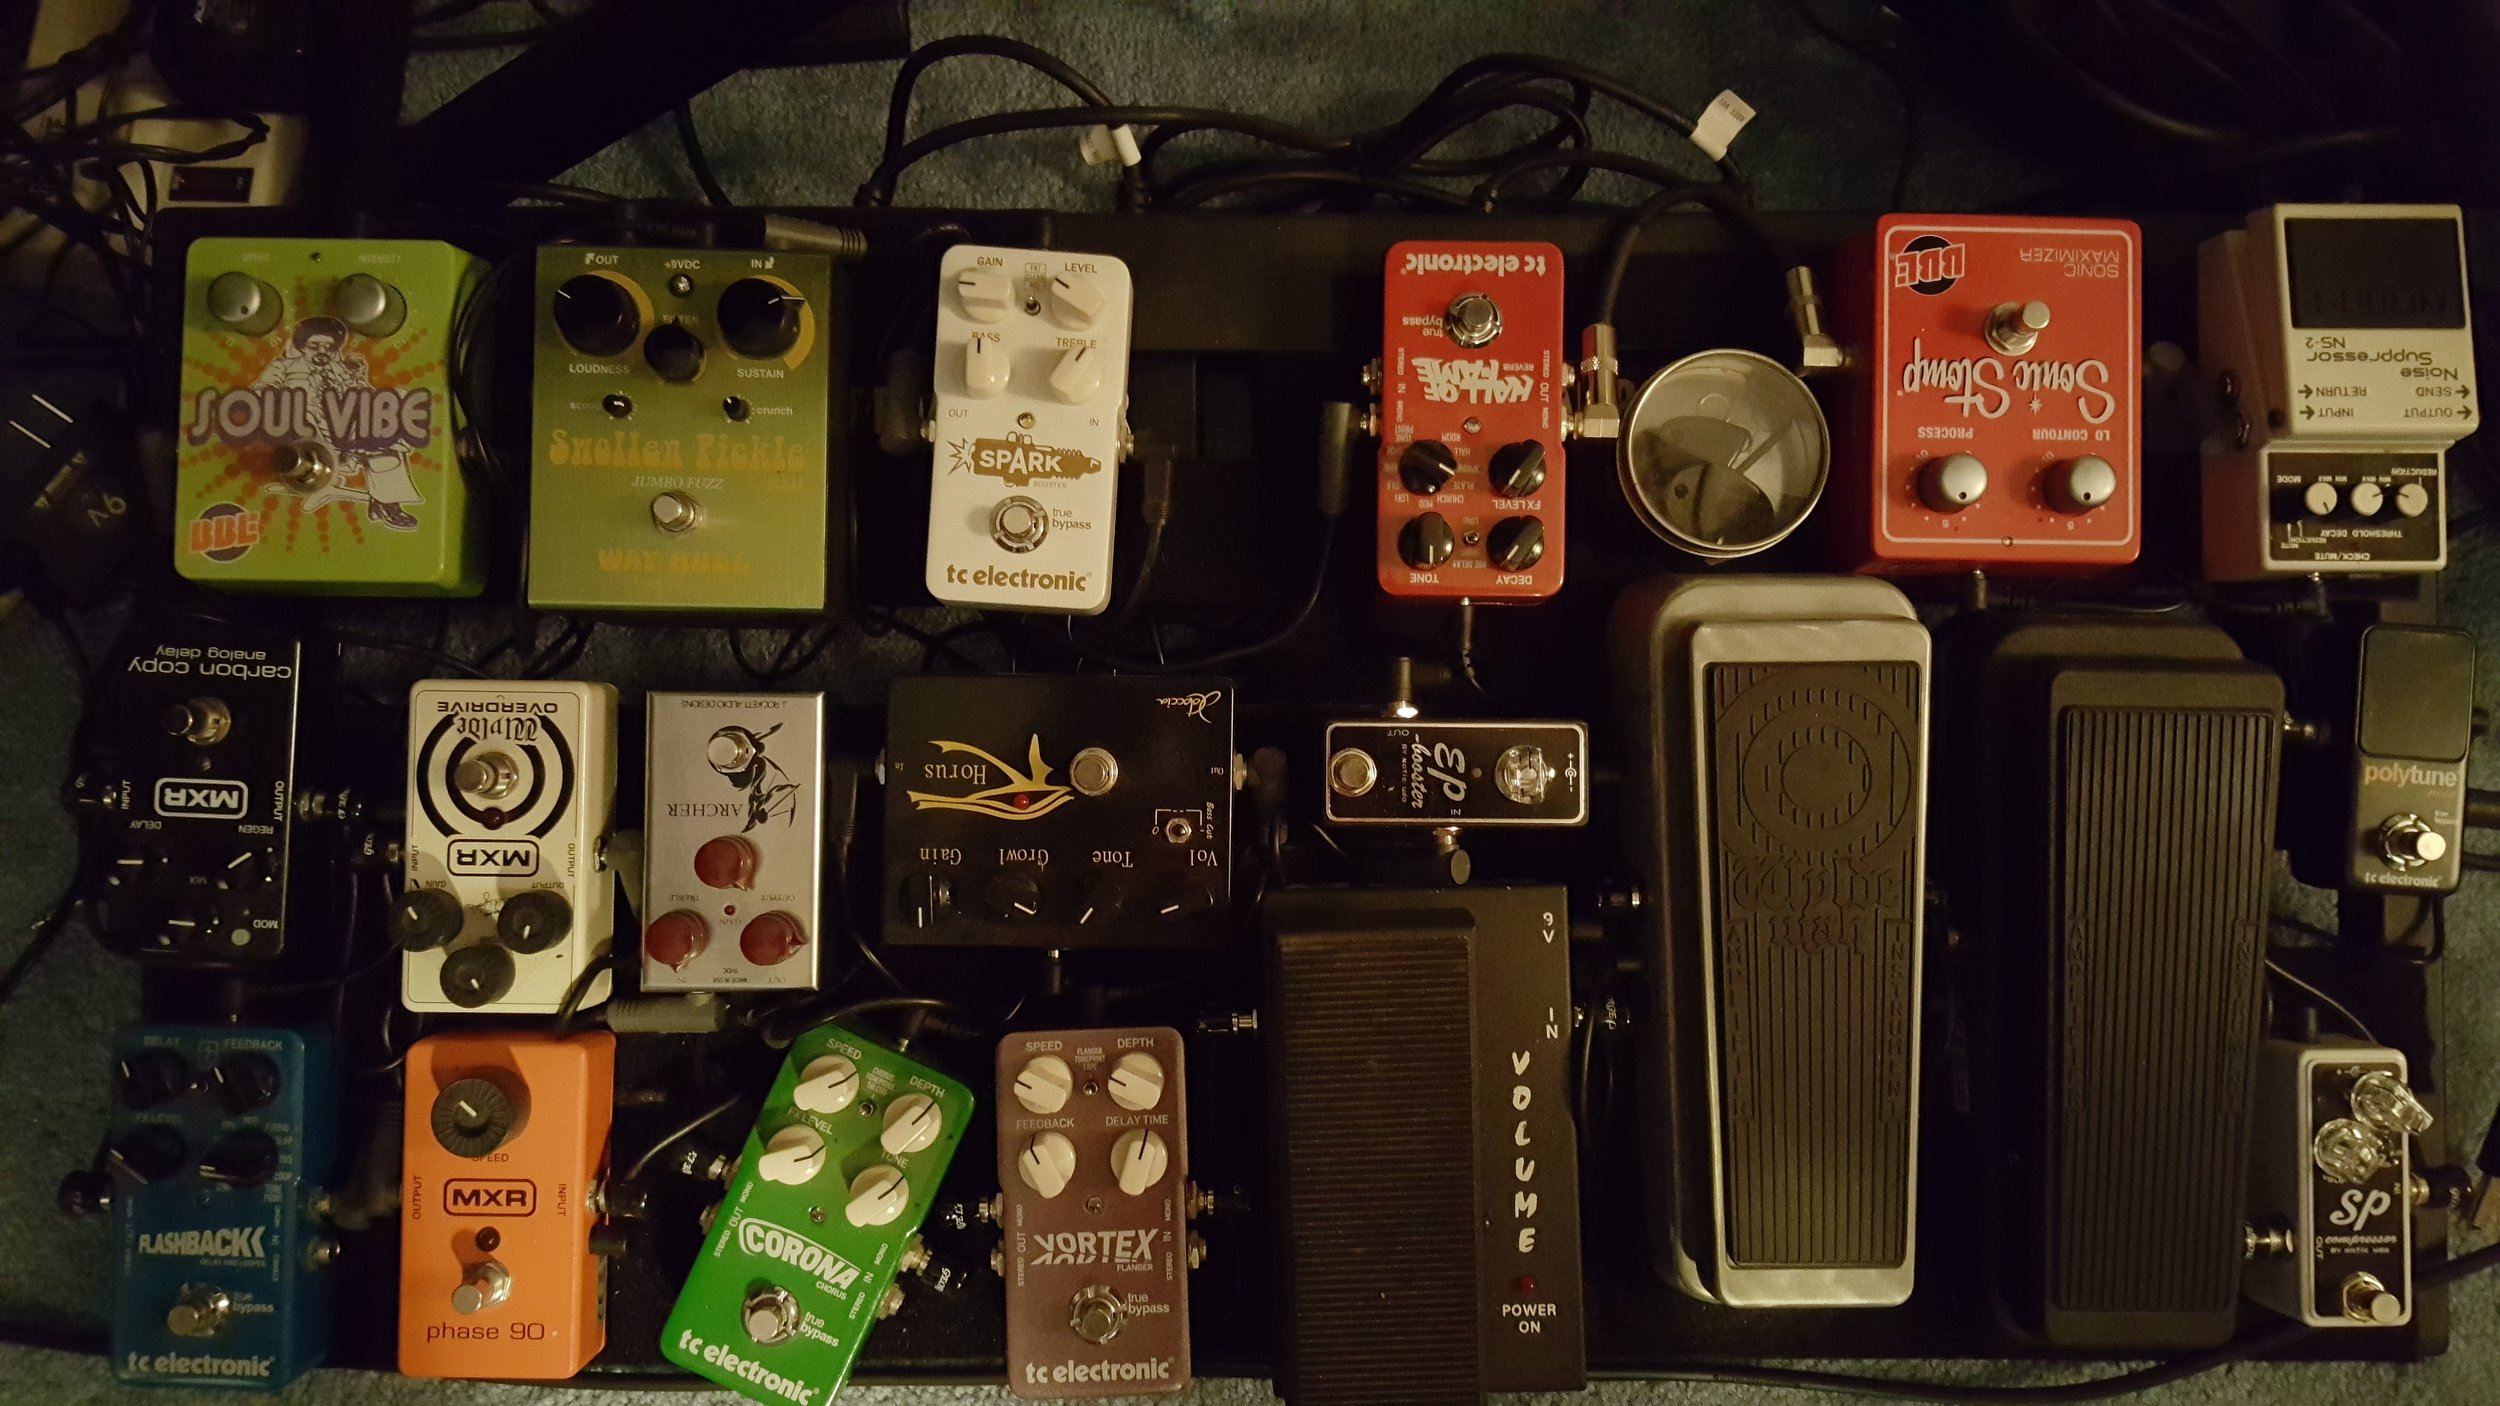 """This is my """"current"""" main pedal board as of May 2017 that I use live and in the studio. Here is what I have on the board:   MXR/Dunlop: Phase 90, Zakk Wylde Overdrive, Carbon Copy Delay, Original Spec Wah, & a Zakk Wylde Wah.   TC Electronics: Flashback Delay, Vortex Flanger, Carona Chorus, Polly Micro Tuner, & Sparks Booster.   Boss:  Noise Gate.   BBE:  Sonic Stomp Enhancer, & Soul Vibe roto-vibe pedal.   Way Huge:  Swollen Pickle Fuzz.   Morley:  Mini Volume Pedal.   Exotic Effects:  SP Compressor & EP Booster.   J Rockett Audio:  Archer Overdrive.  I never used to use guitar effects pedals but have since grown to love them. I don't use a lot at one given time but these give me options for different sounds which work out great depending on what song I am playing. I also have an extension pedal board which has two line 6 pedals. I don't use this board a lot but would like to expand on it and start using it live. I also have a smaller acoustic pedal board for instrumental pieces."""